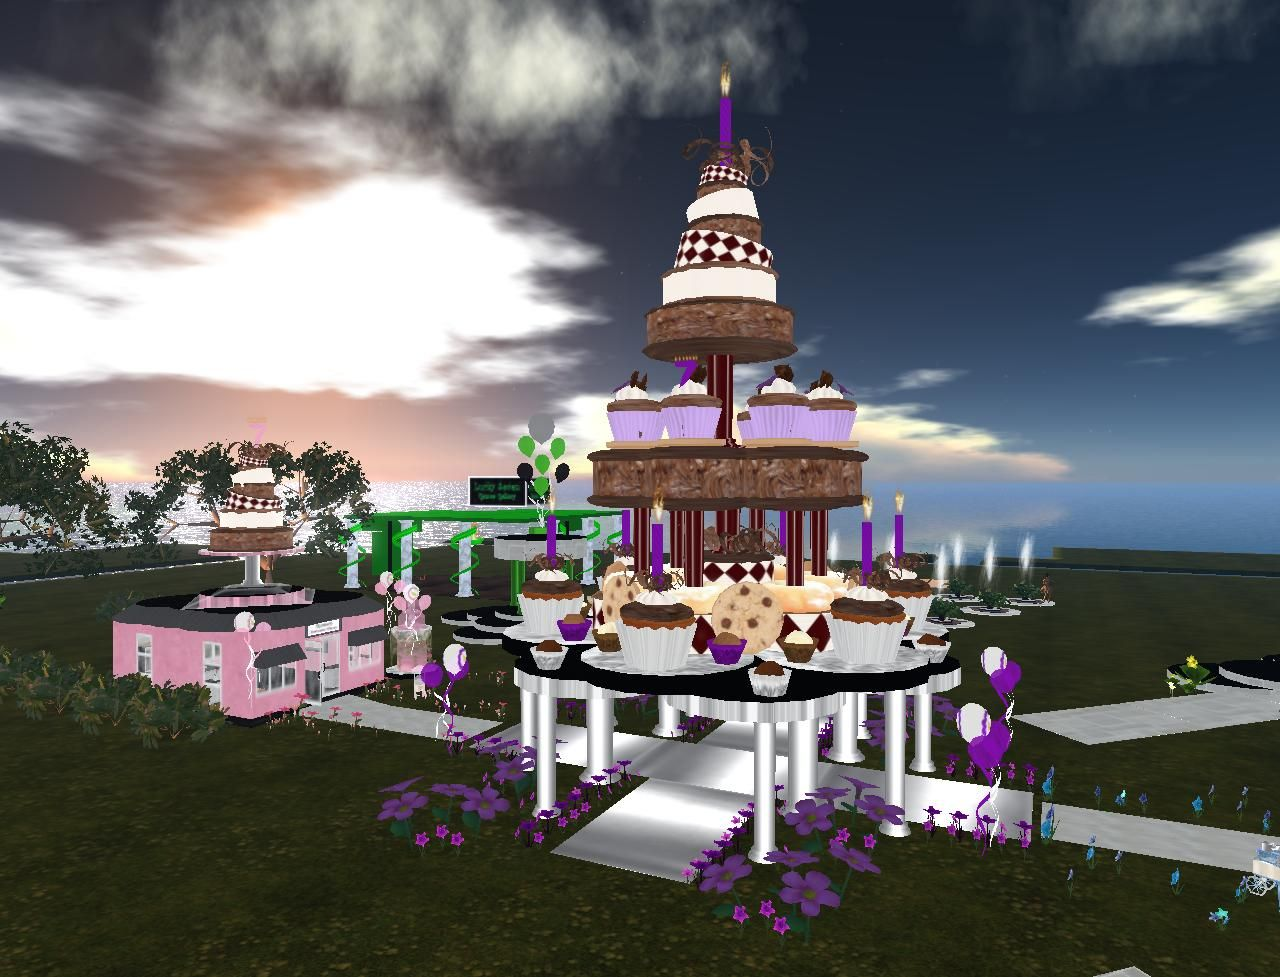 The Candy Store Is Open  SLB Big Birthday Cake Candy Store - The biggest birthday cake